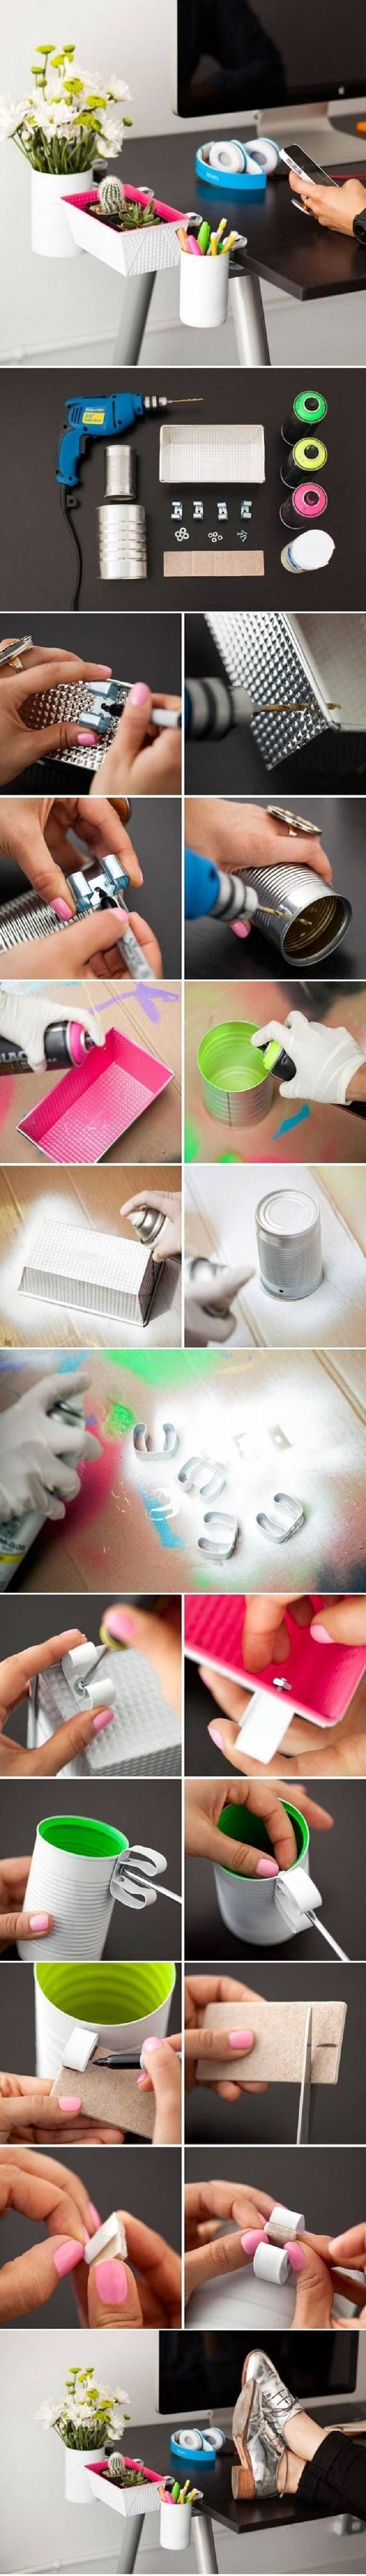 412 best diy craf and recicle images on pinterest crafts